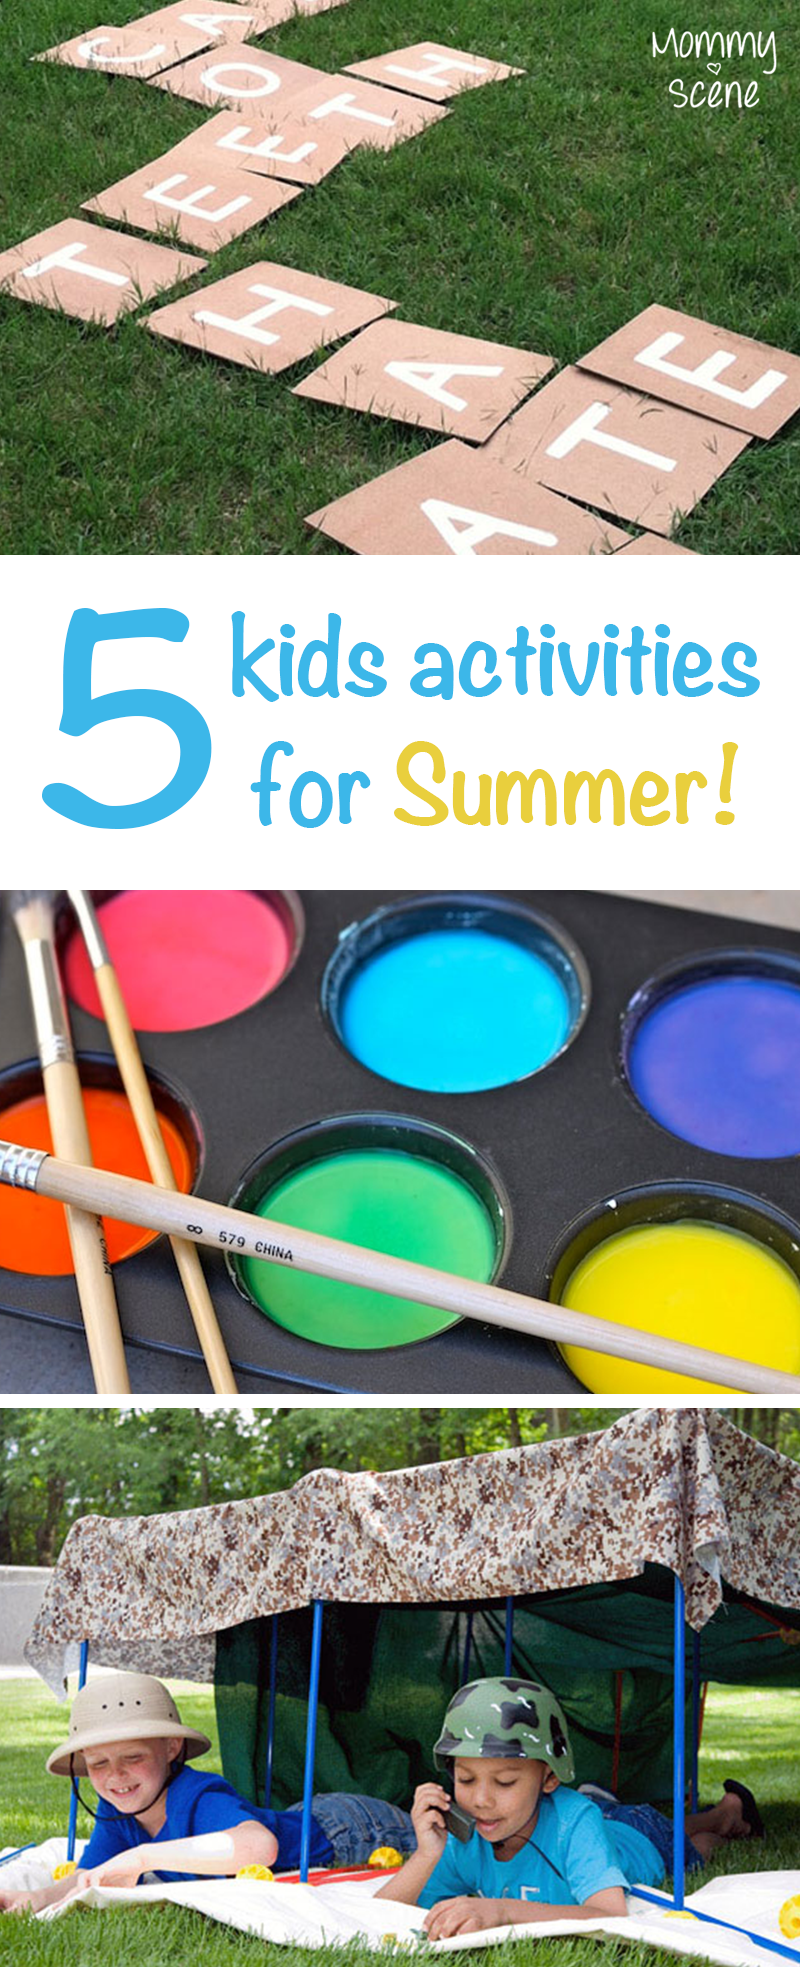 5 summer activities for kids budgeting activities and craft